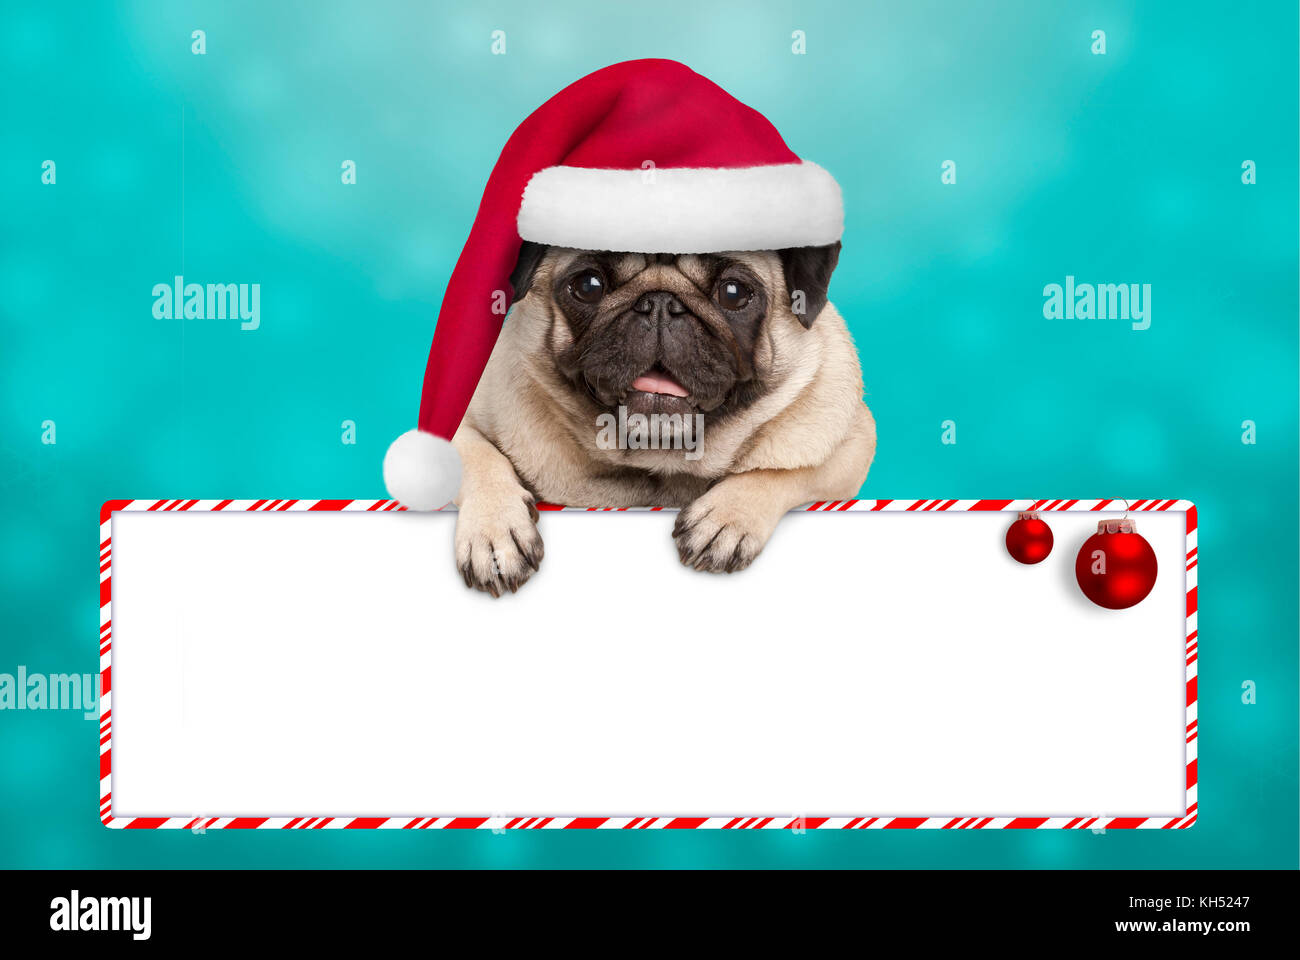 d1ce01fc8b4 cute smiling Christmas pug puppy dog with santa hat